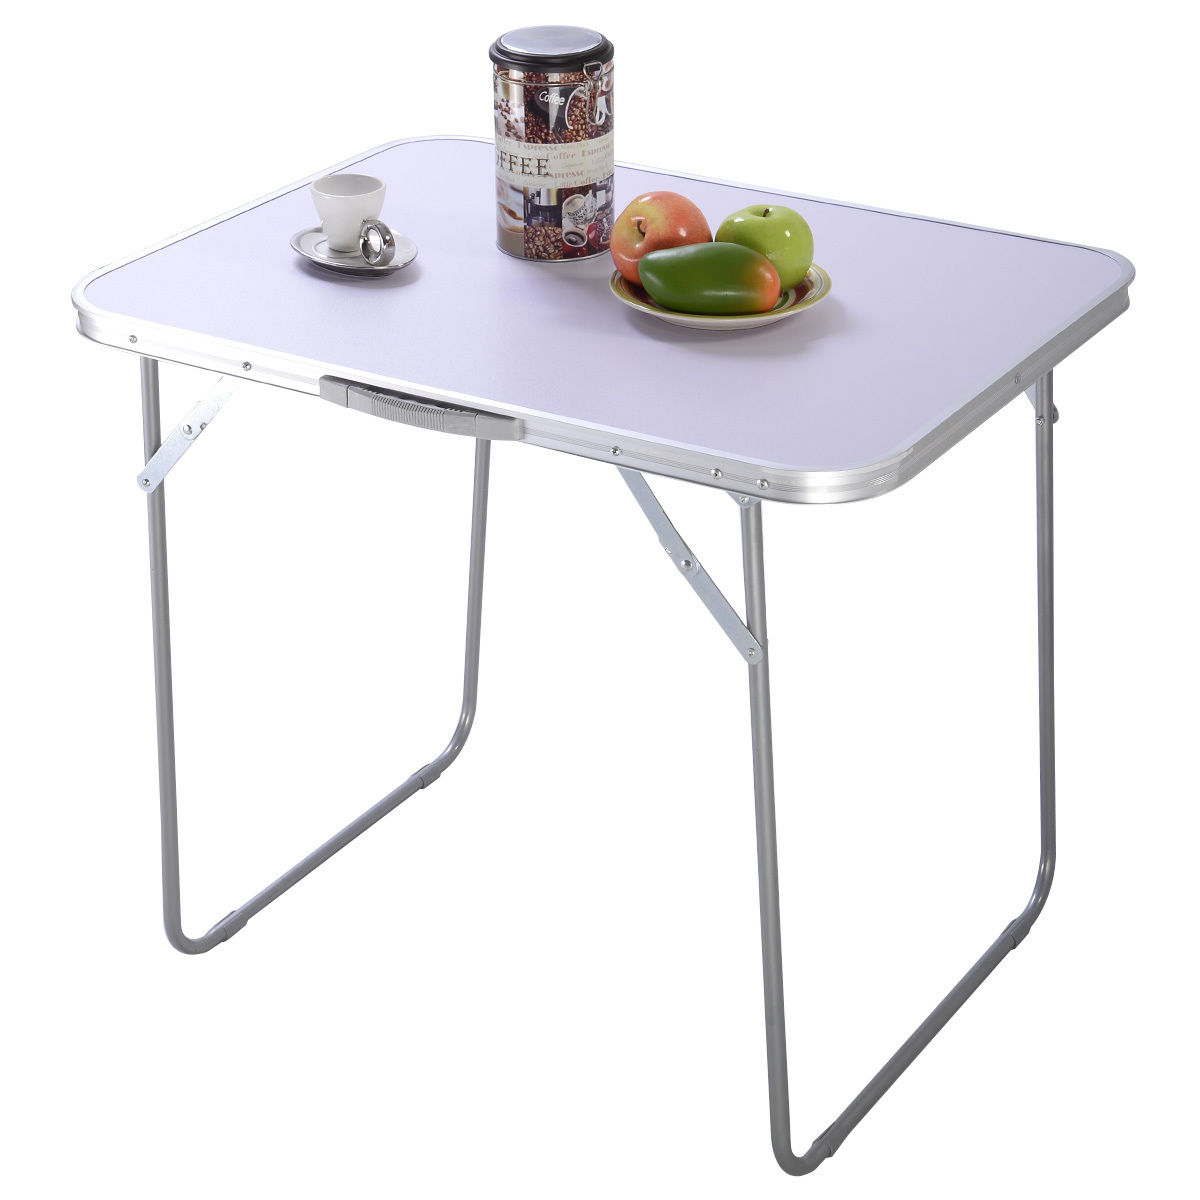 In / Outdoor Dining Camping Portable Folding Table HW50748